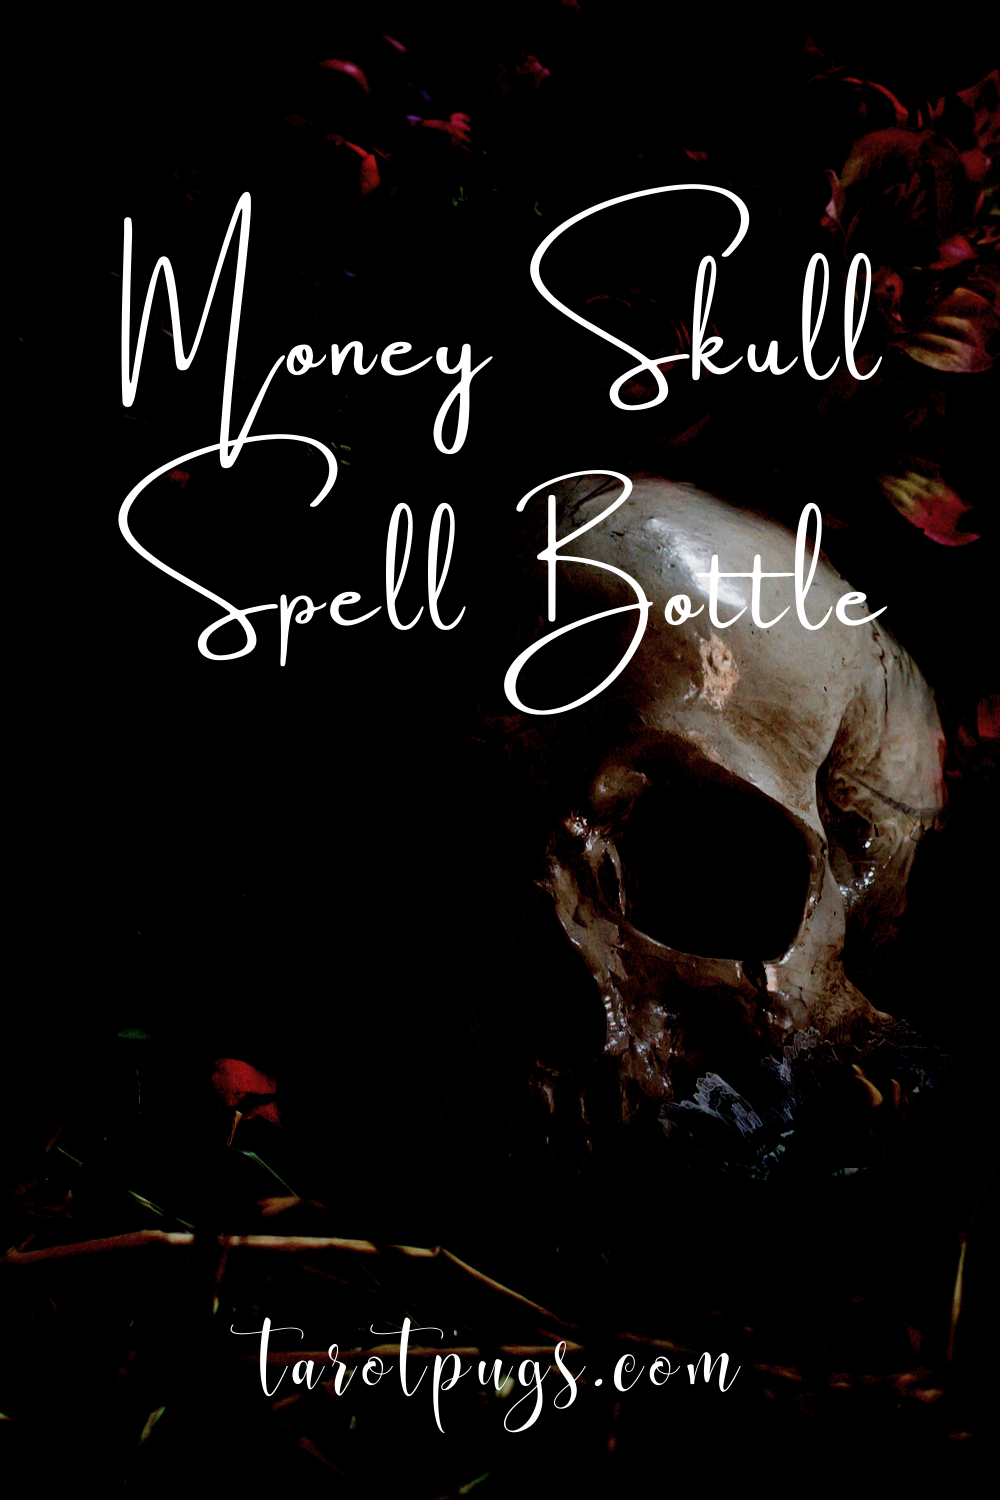 Learn how to make this witchcraft money skull spell bottle to attract money to your or your business. #witchcraft #money #moneyspells